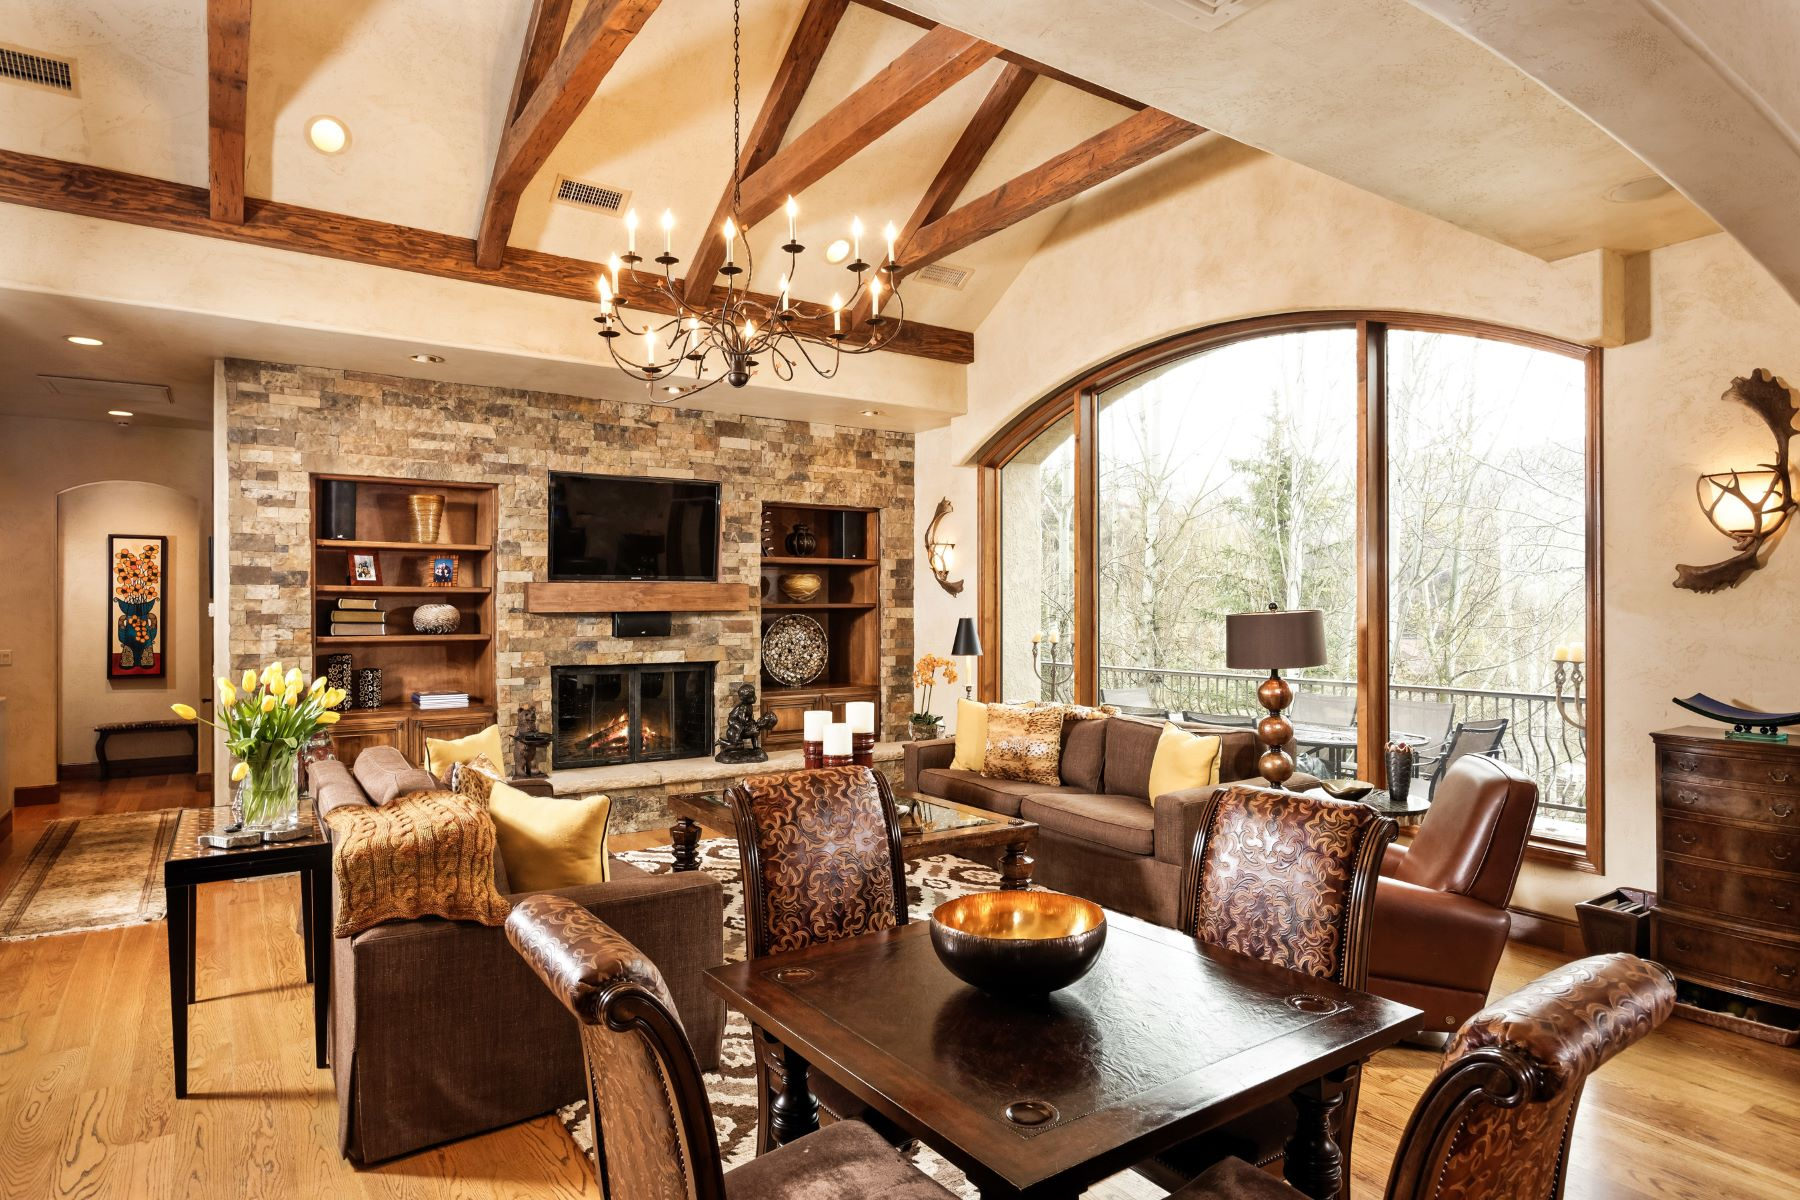 一戸建て のために 売買 アット Beautifully Appointed Mountain Elegance in Horse Ranch 332 Branding Lane, Snowmass Village, コロラド, 81615 アメリカ合衆国